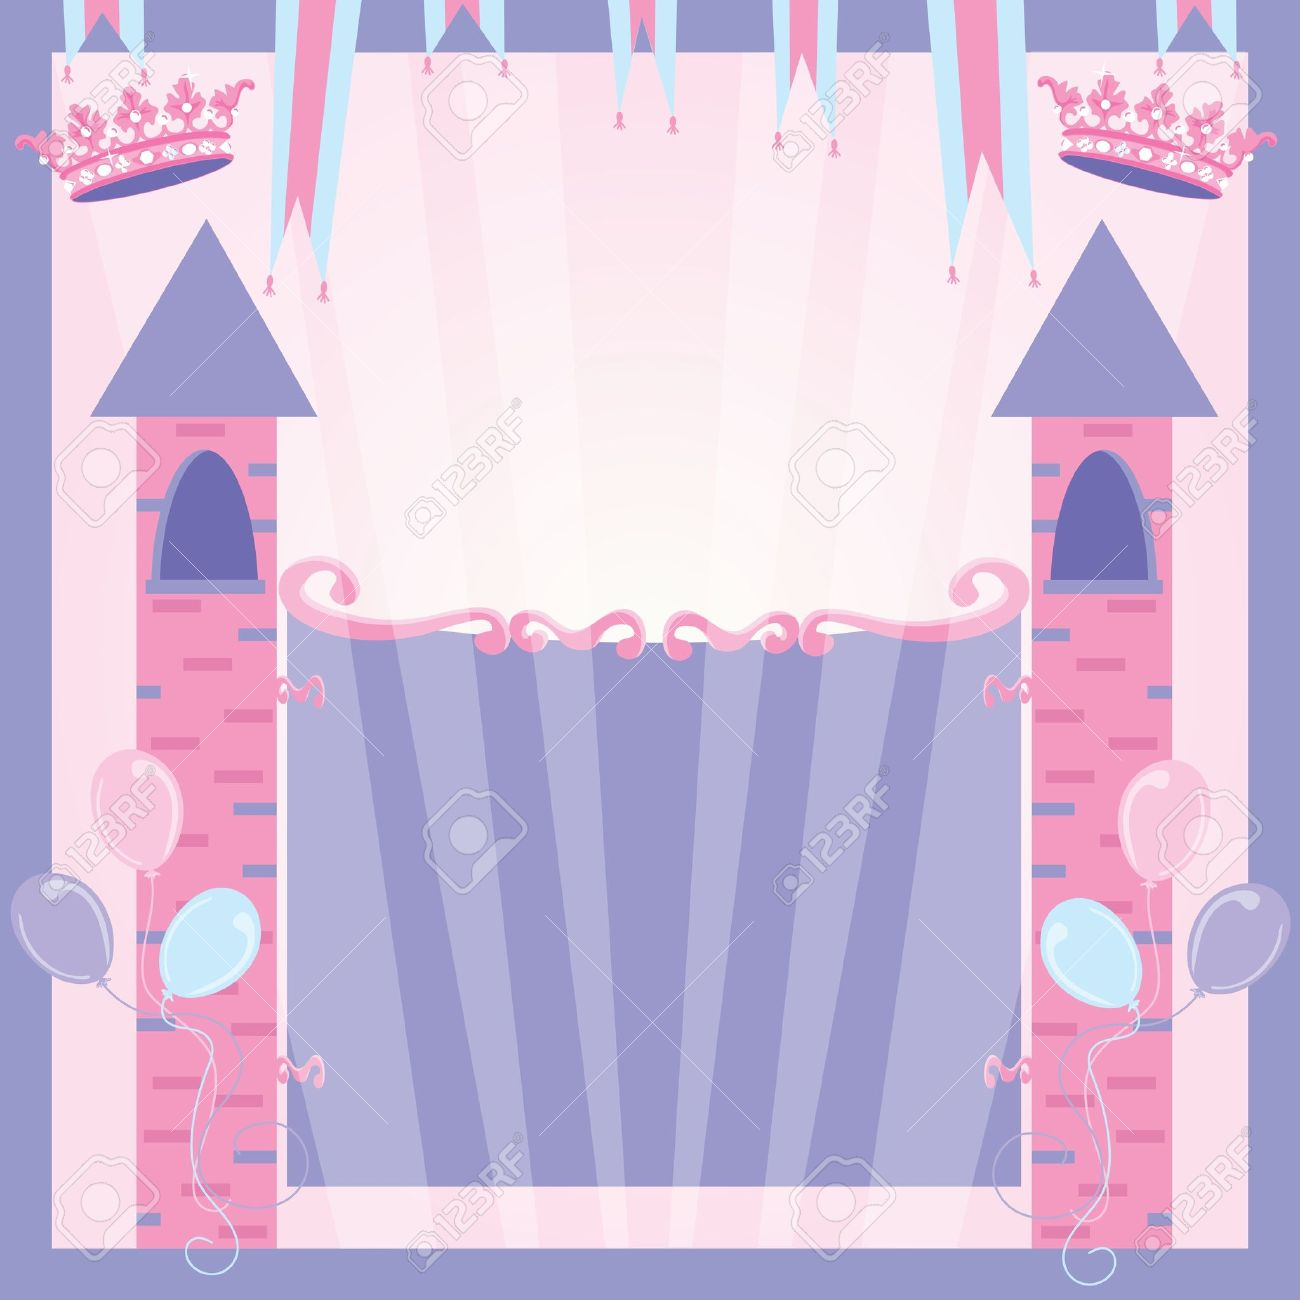 Princess Birthday Party Invitation Castle Stock Vector